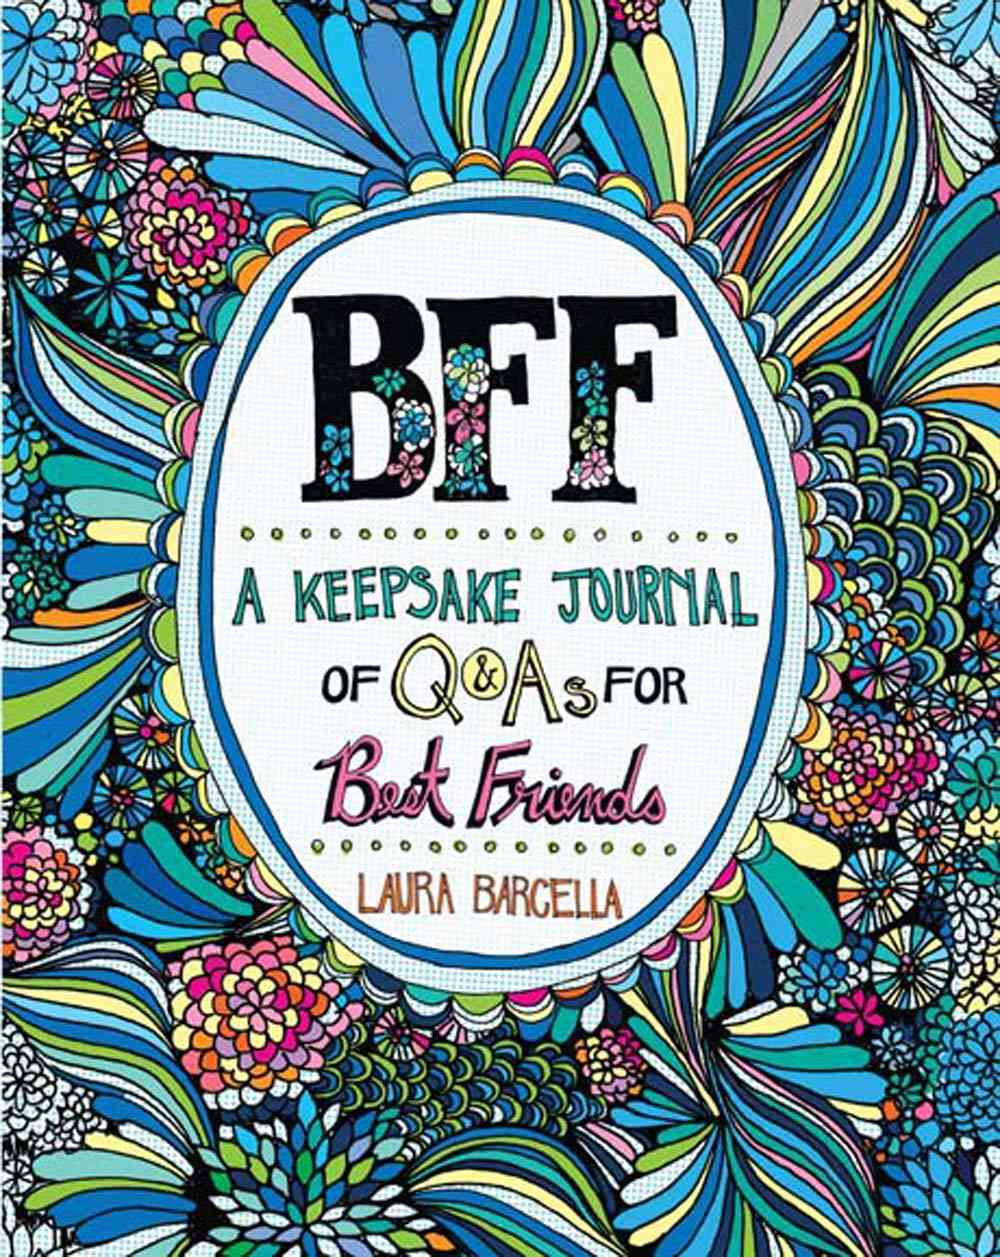 bff - A Keepsake Journal of Q&As for Best Friends(Sterling Children's Publishing, Jan. 2015)